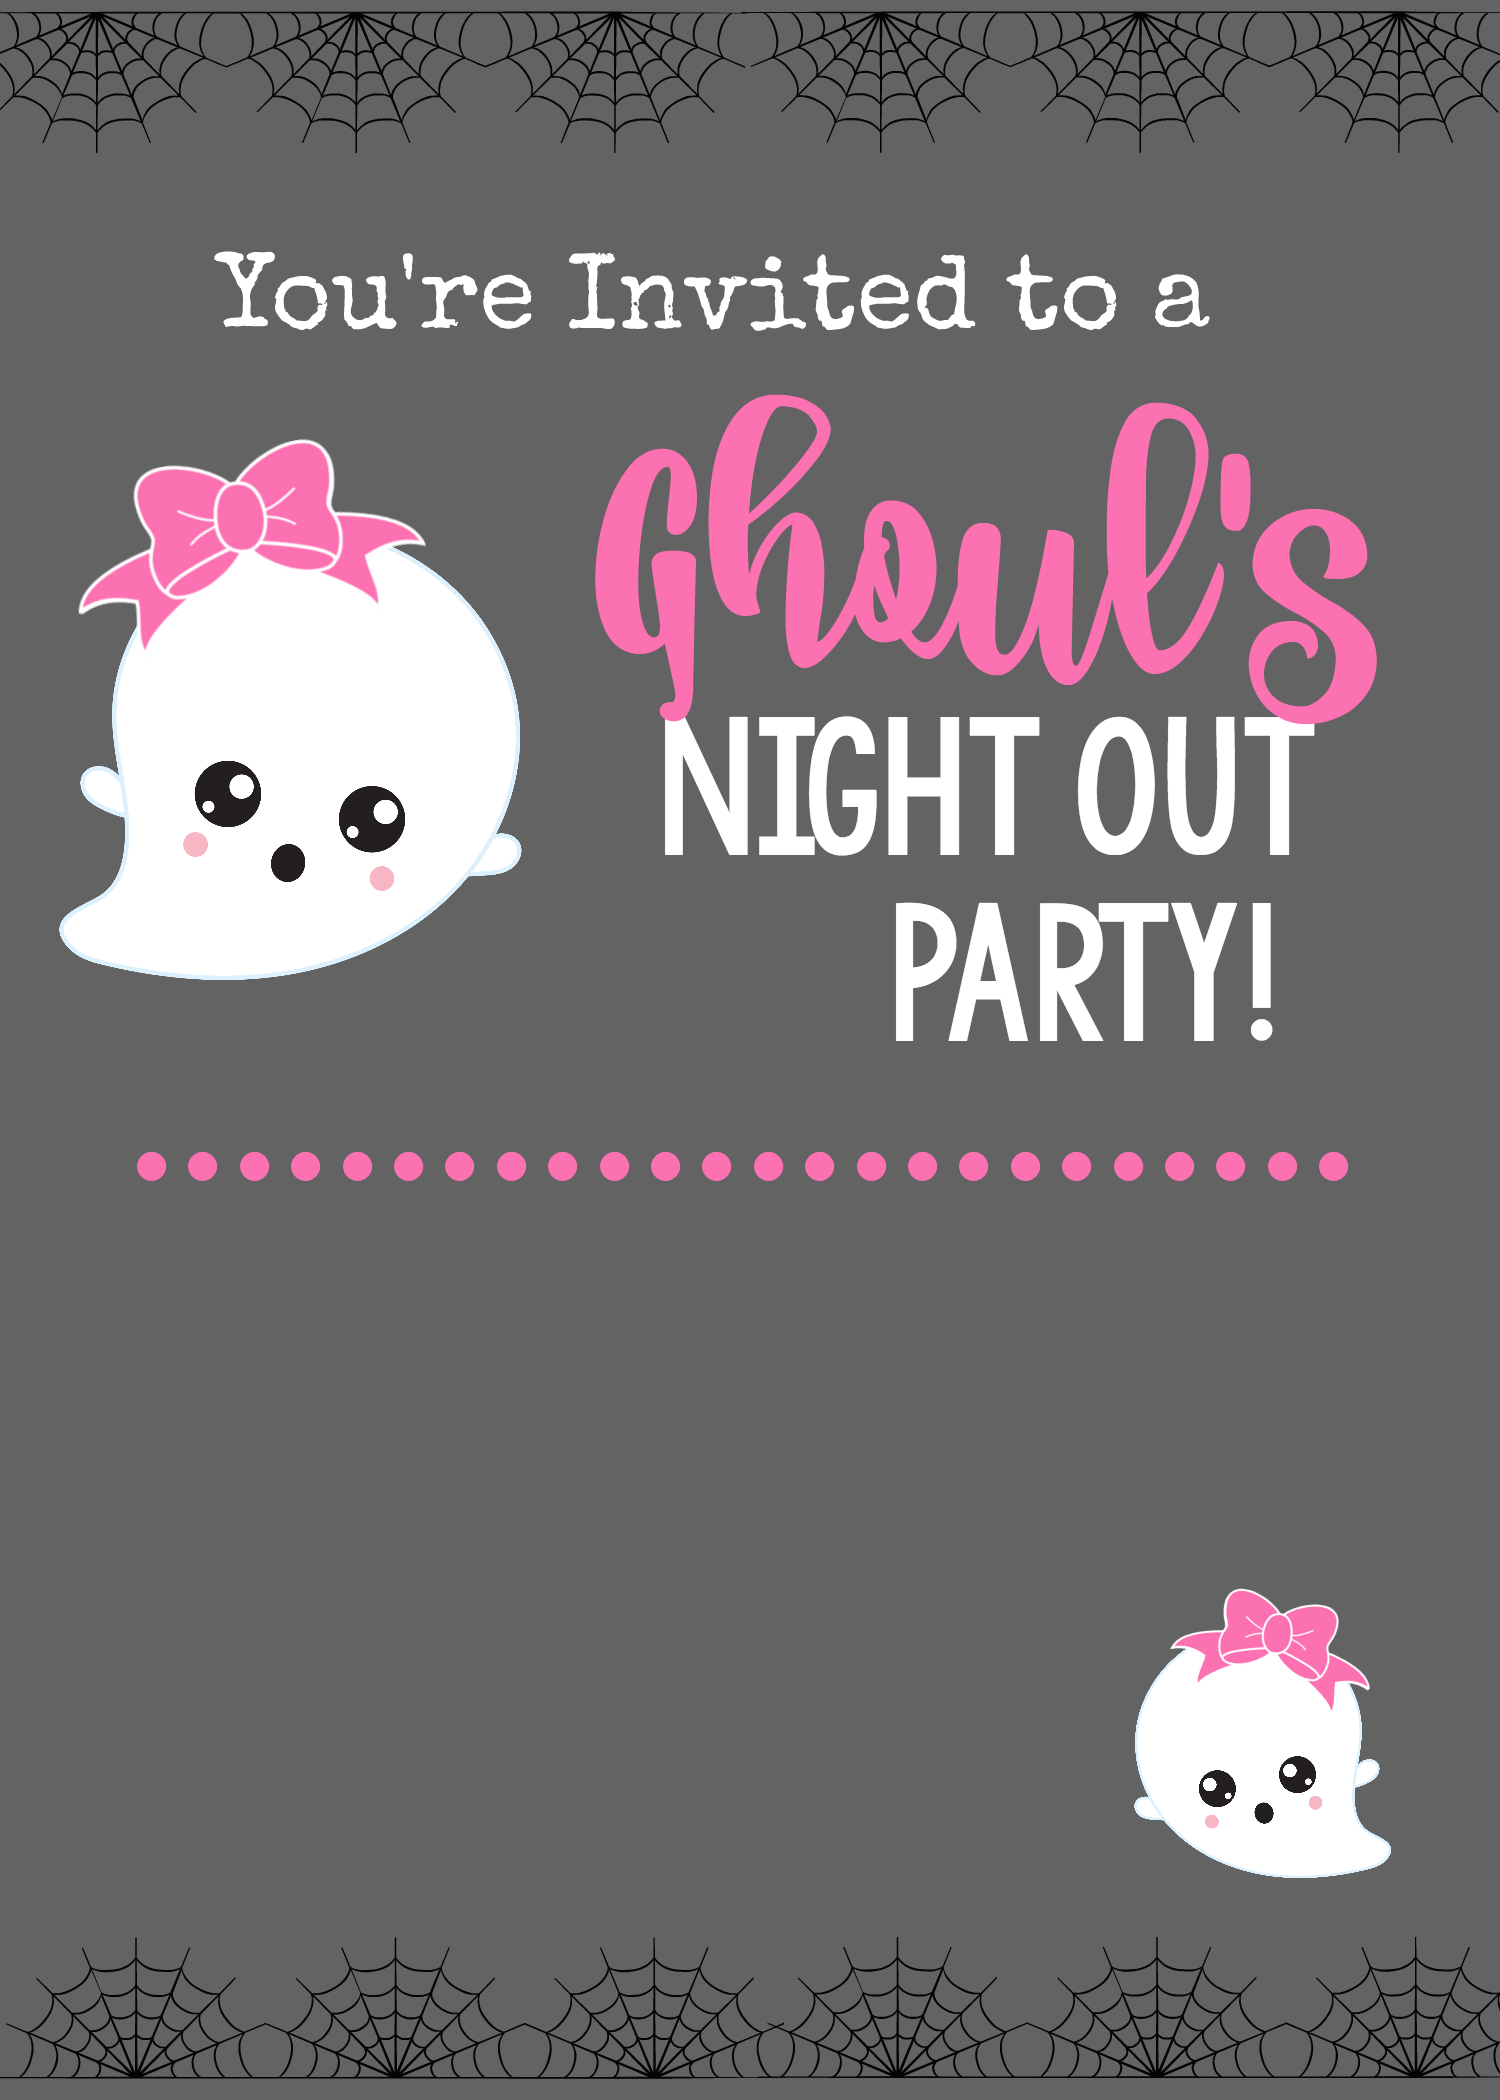 Ghoul's Night Out Party Invitation